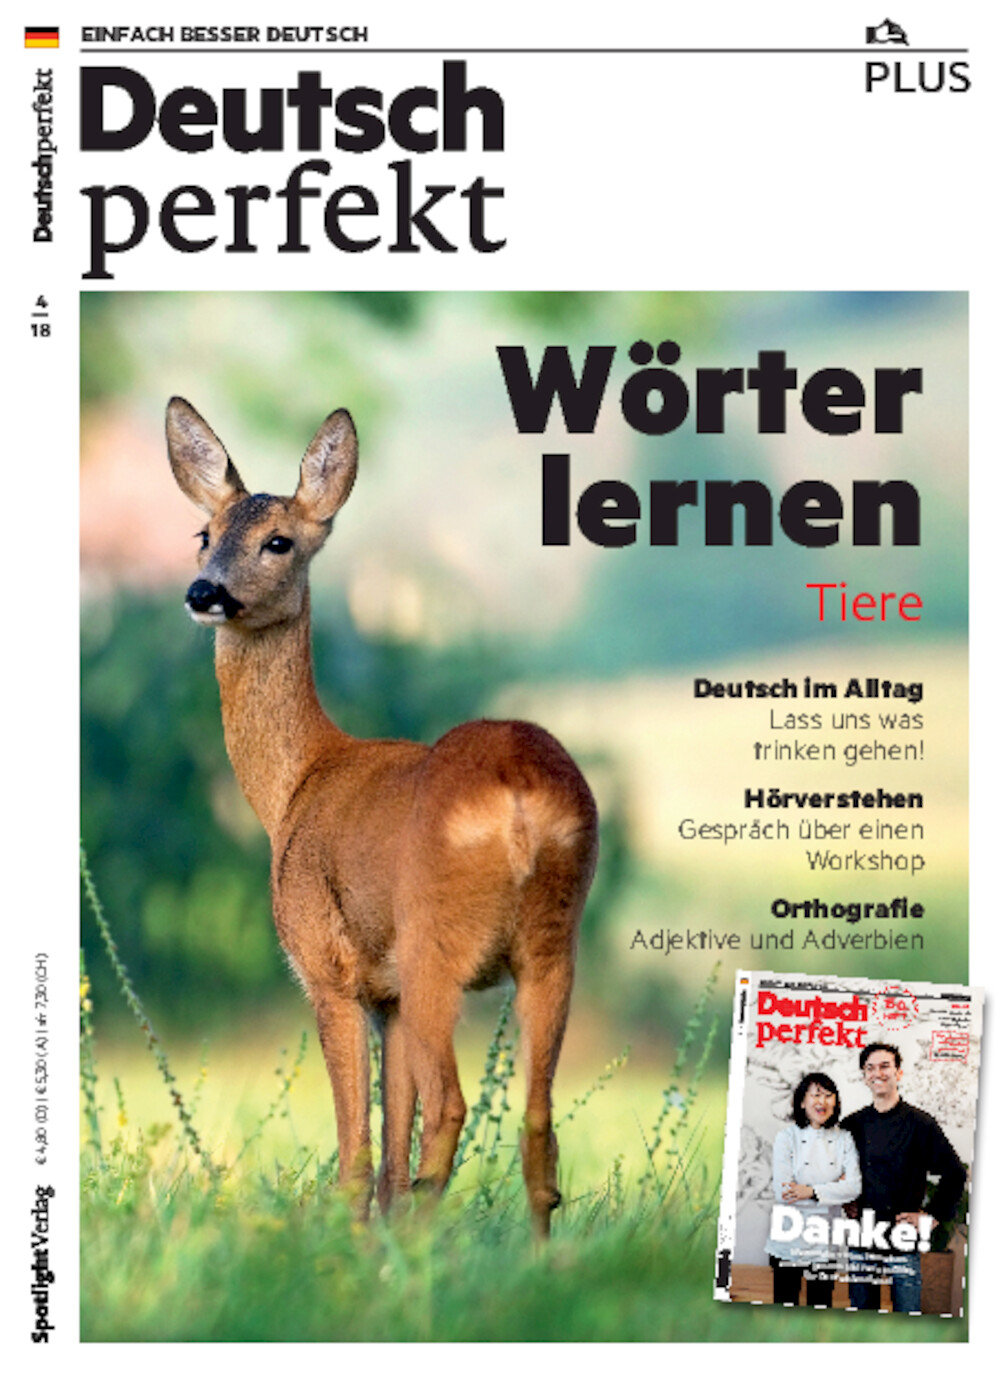 Deutsch perfekt PLUS ePaper 04/2018